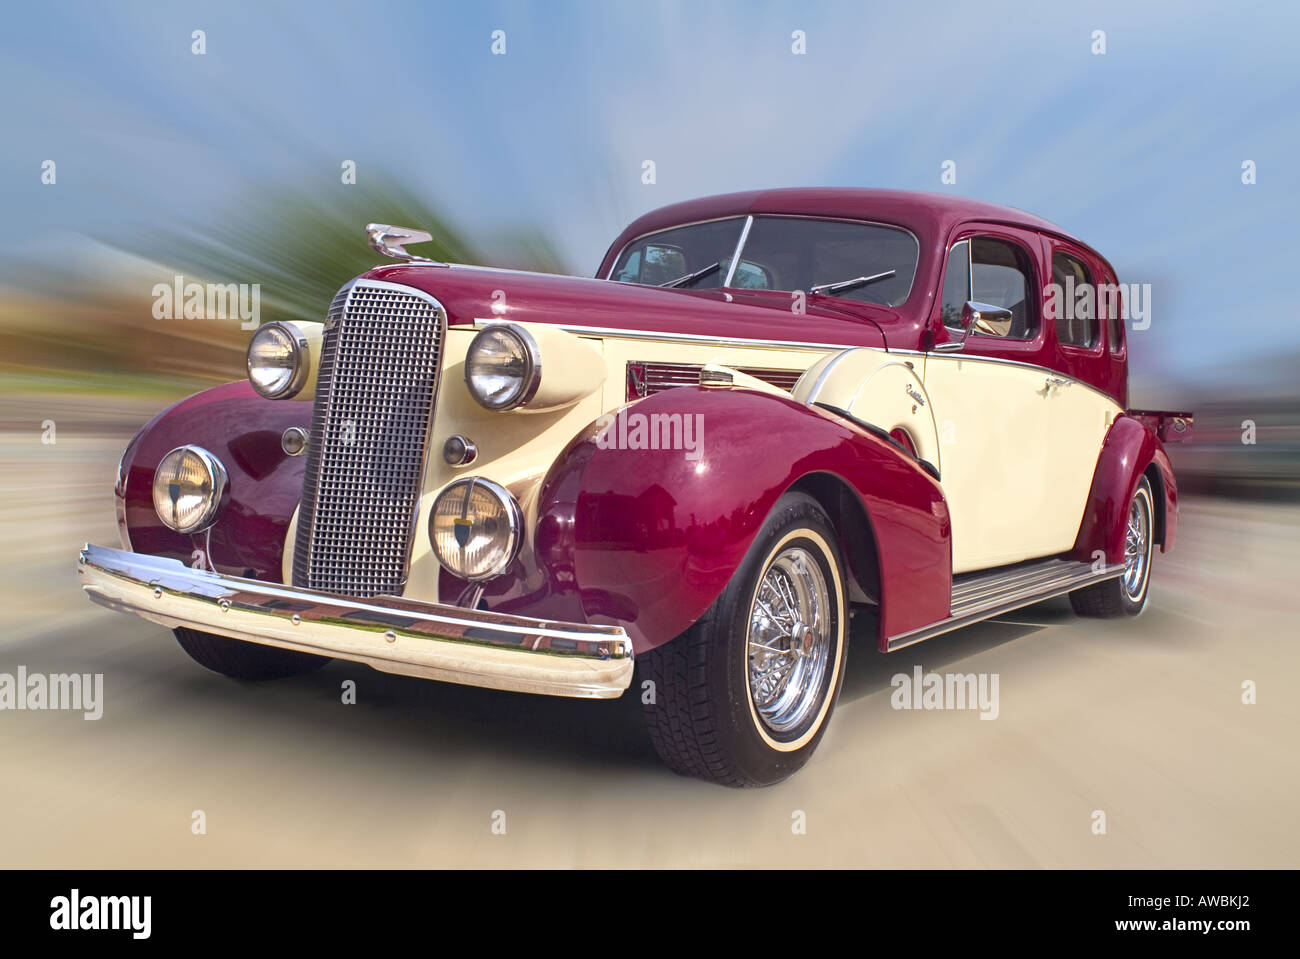 Angle View Of A 1937 Cadillac Automobile In Motion Stock Photo